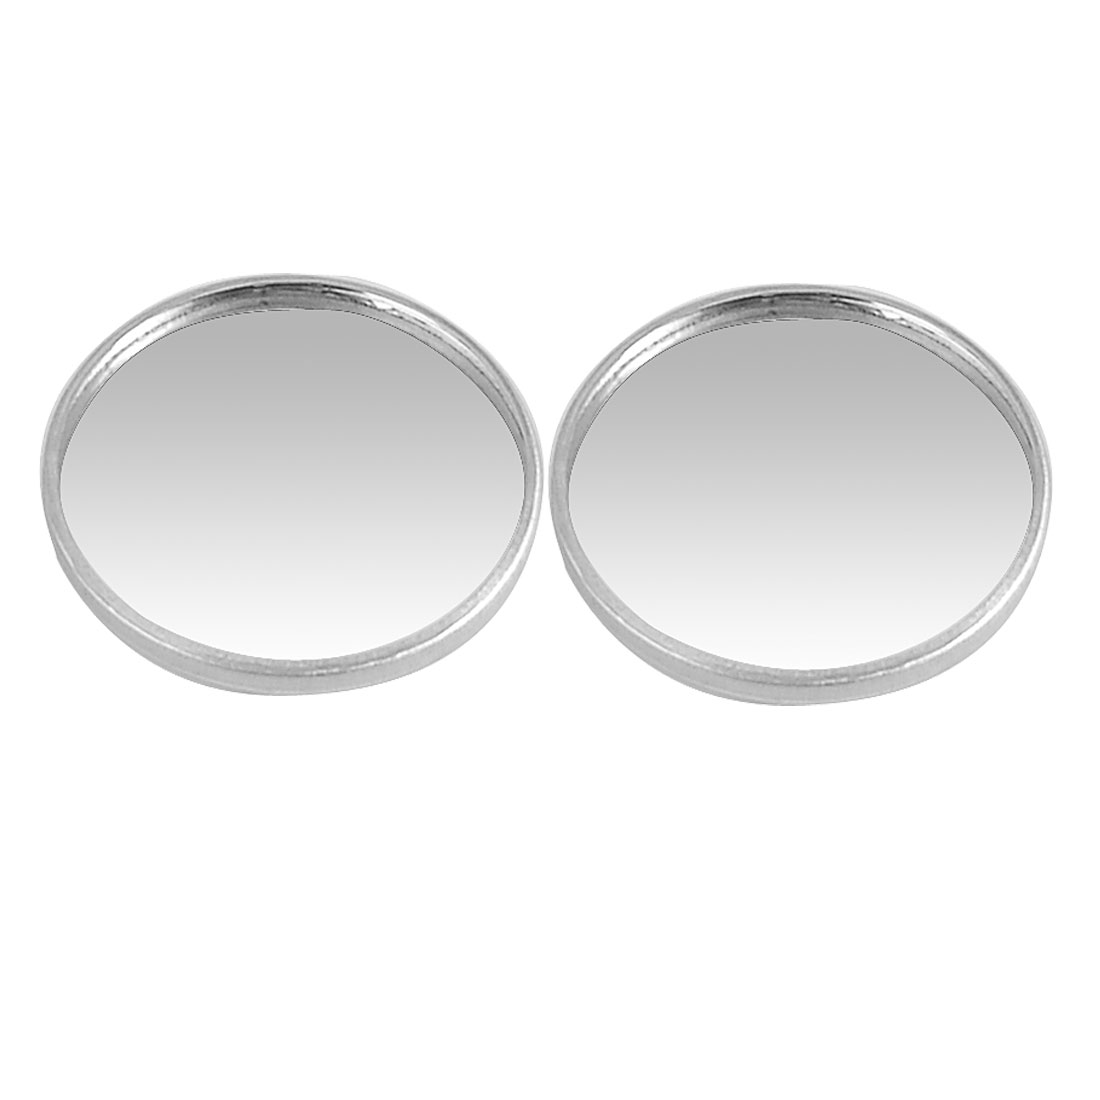 2 Pcs Silver Tone 40mm Round Side Rear View Blind Spot Mirrors